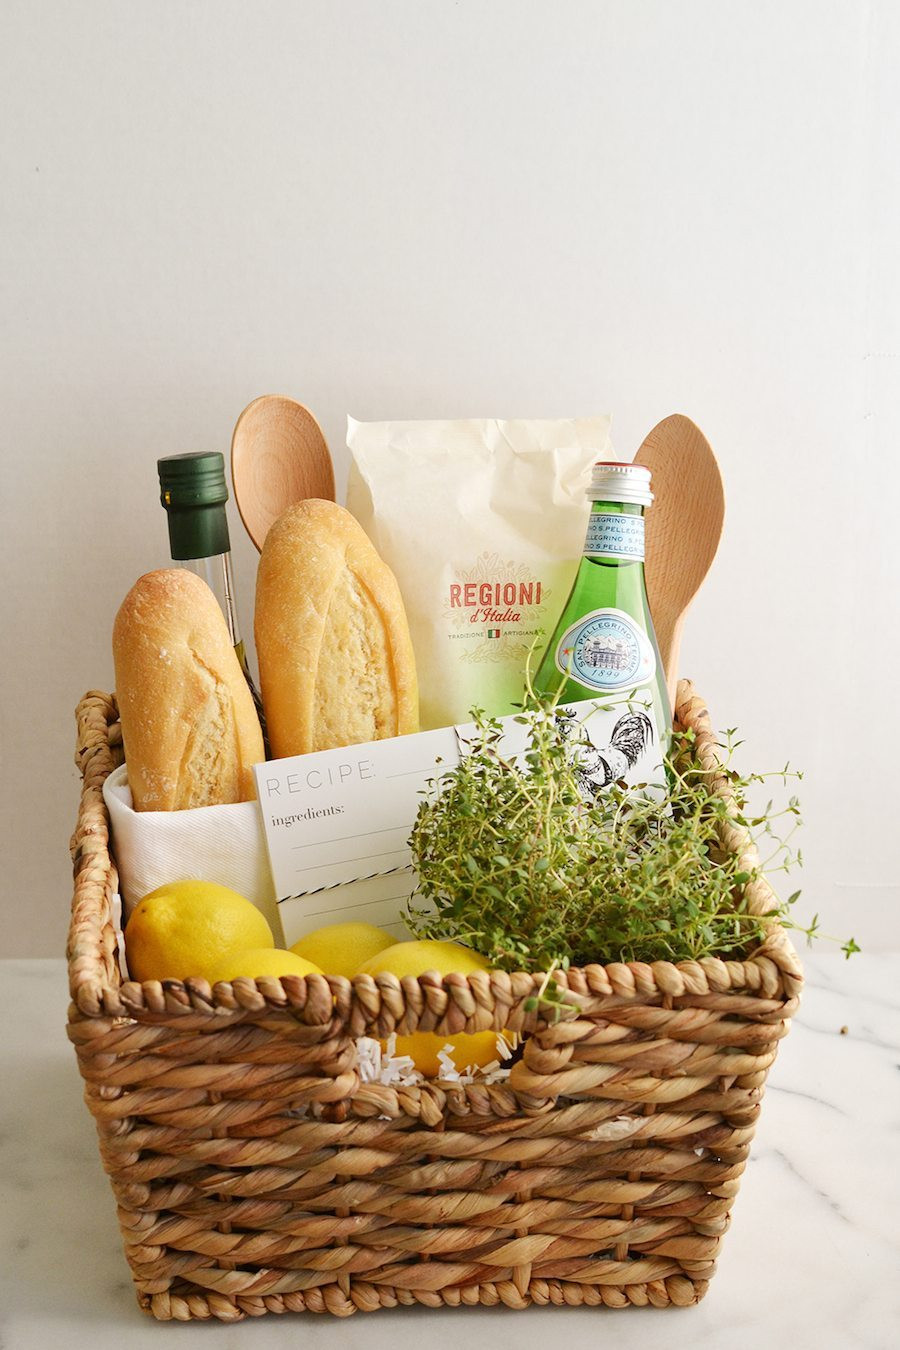 Best Gift Basket Ideas  How to Create a Thoughtful Housewarming Gift